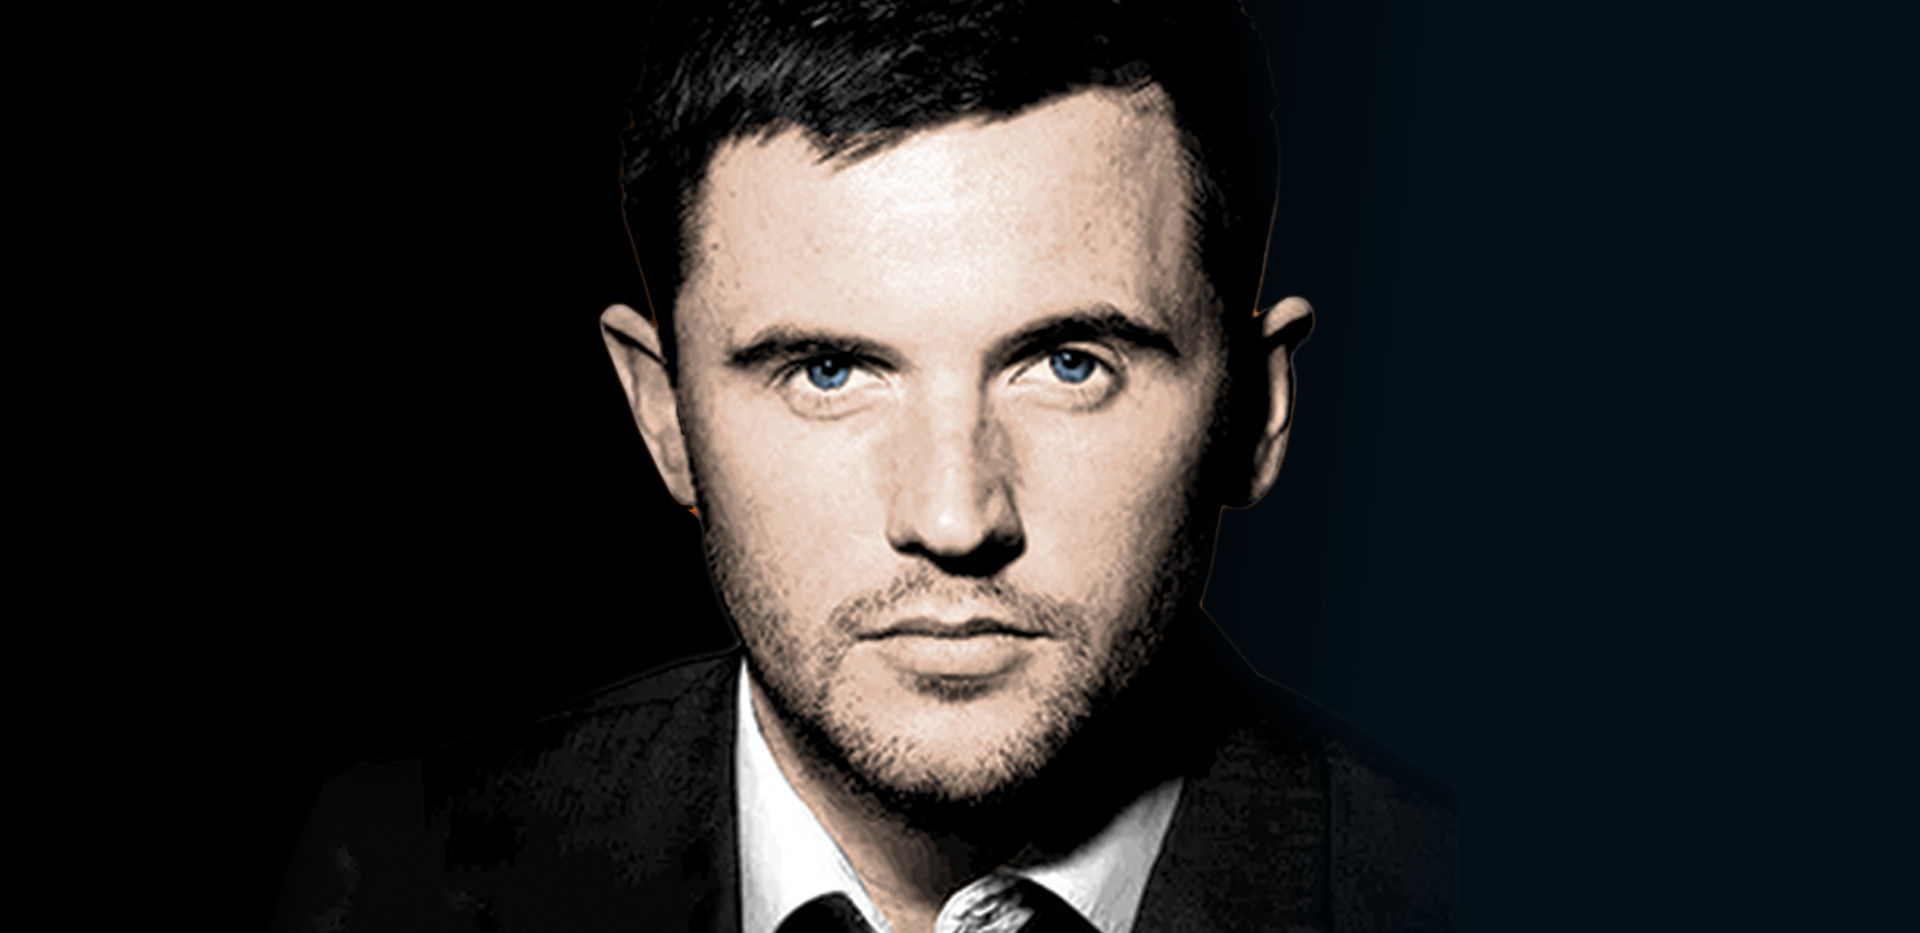 Michael Buble Adam parker brown.jpg